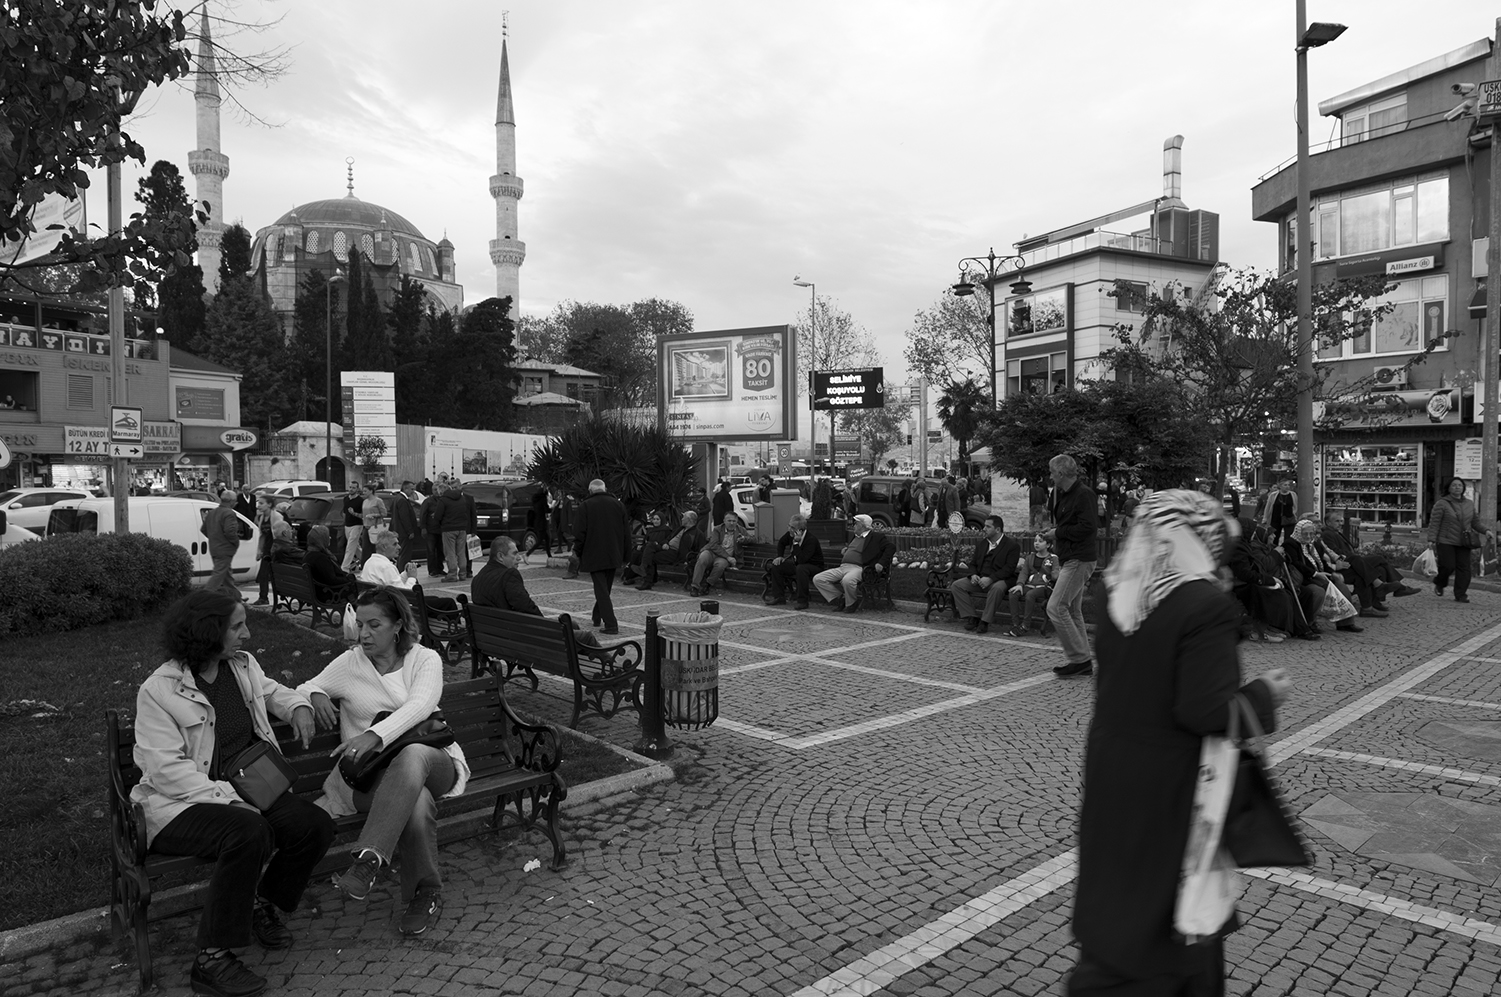 People chatting near the Yeni Valide Mosque